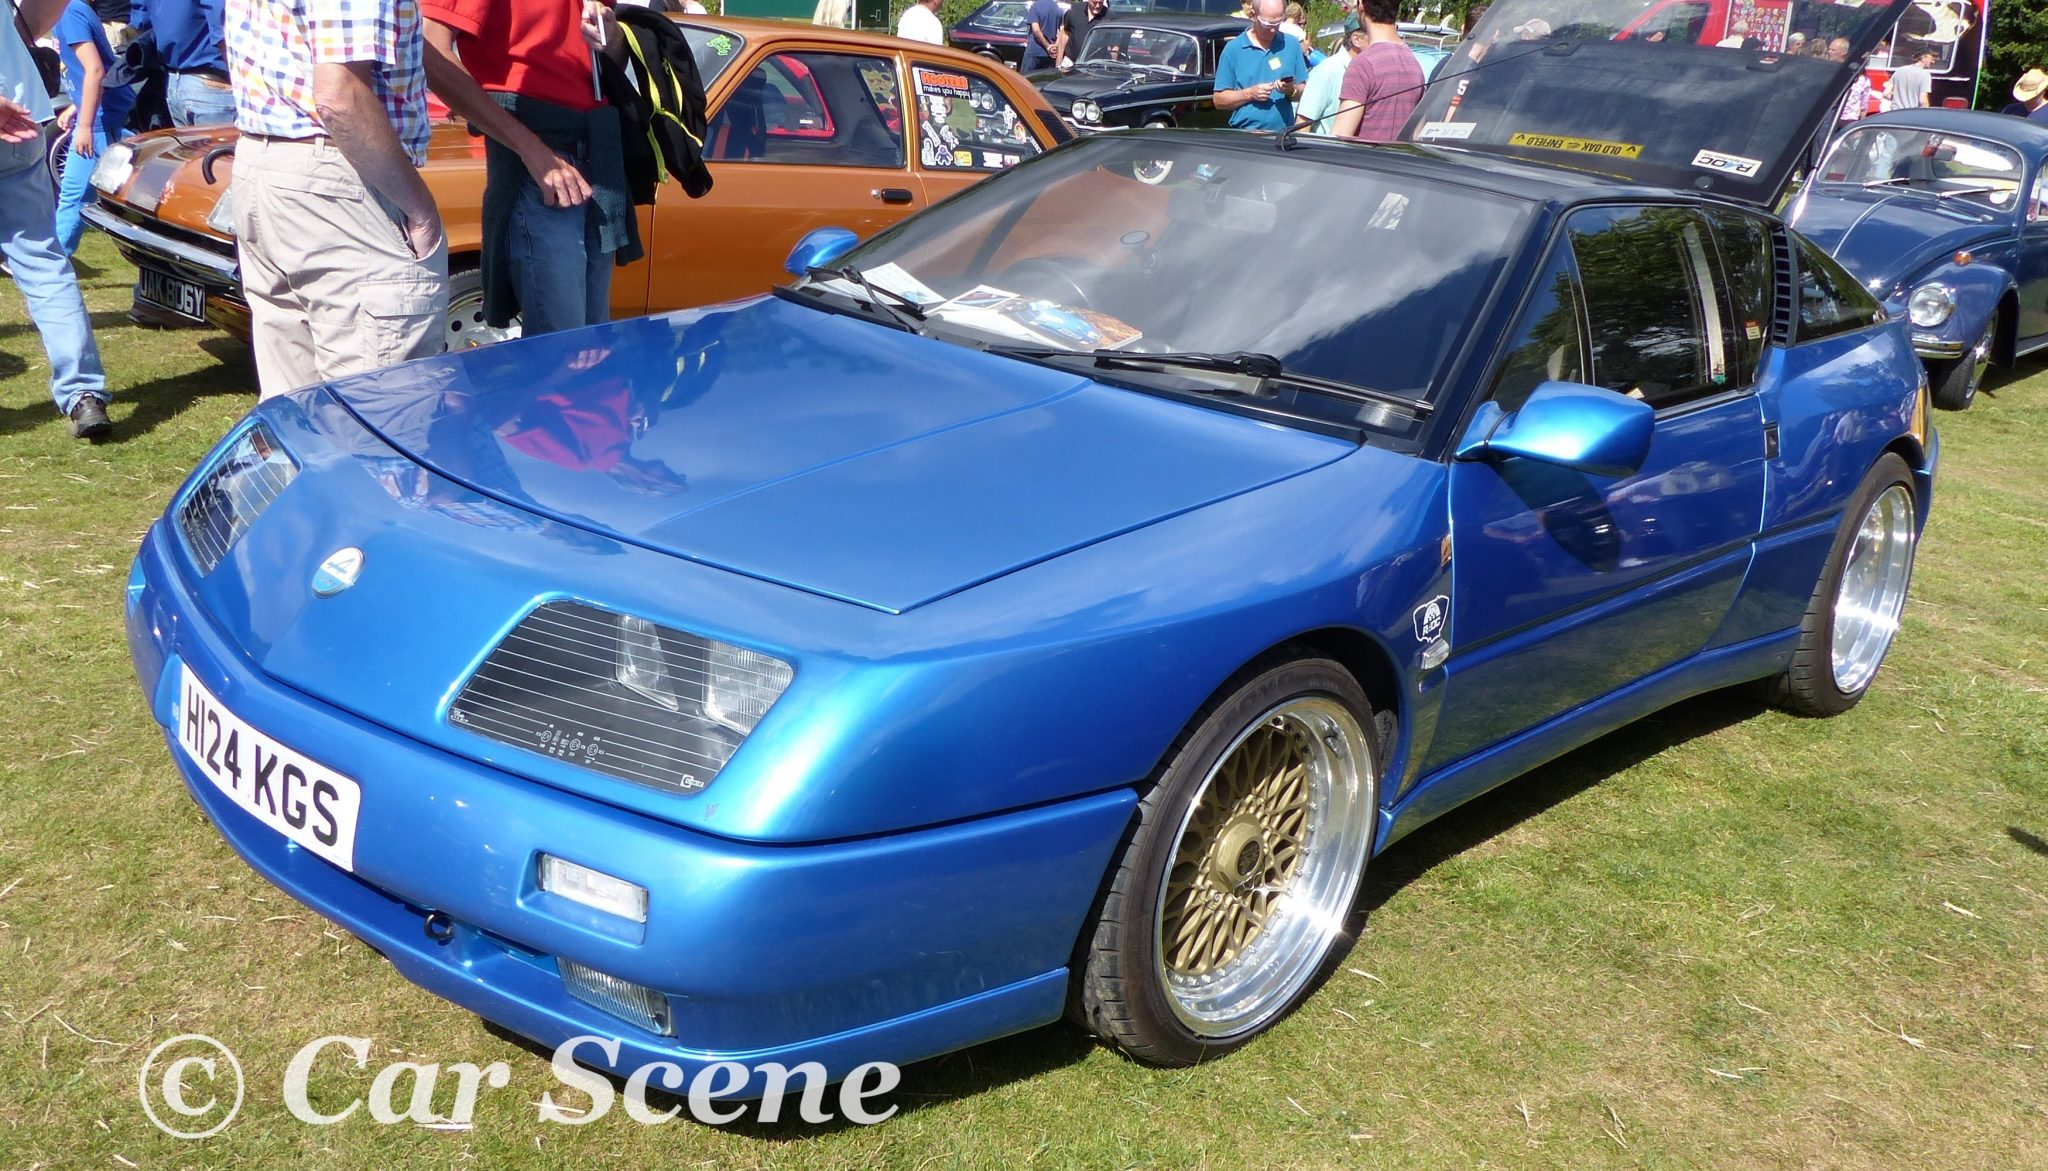 c1978 Reanault Alpine A310 front three quarters view